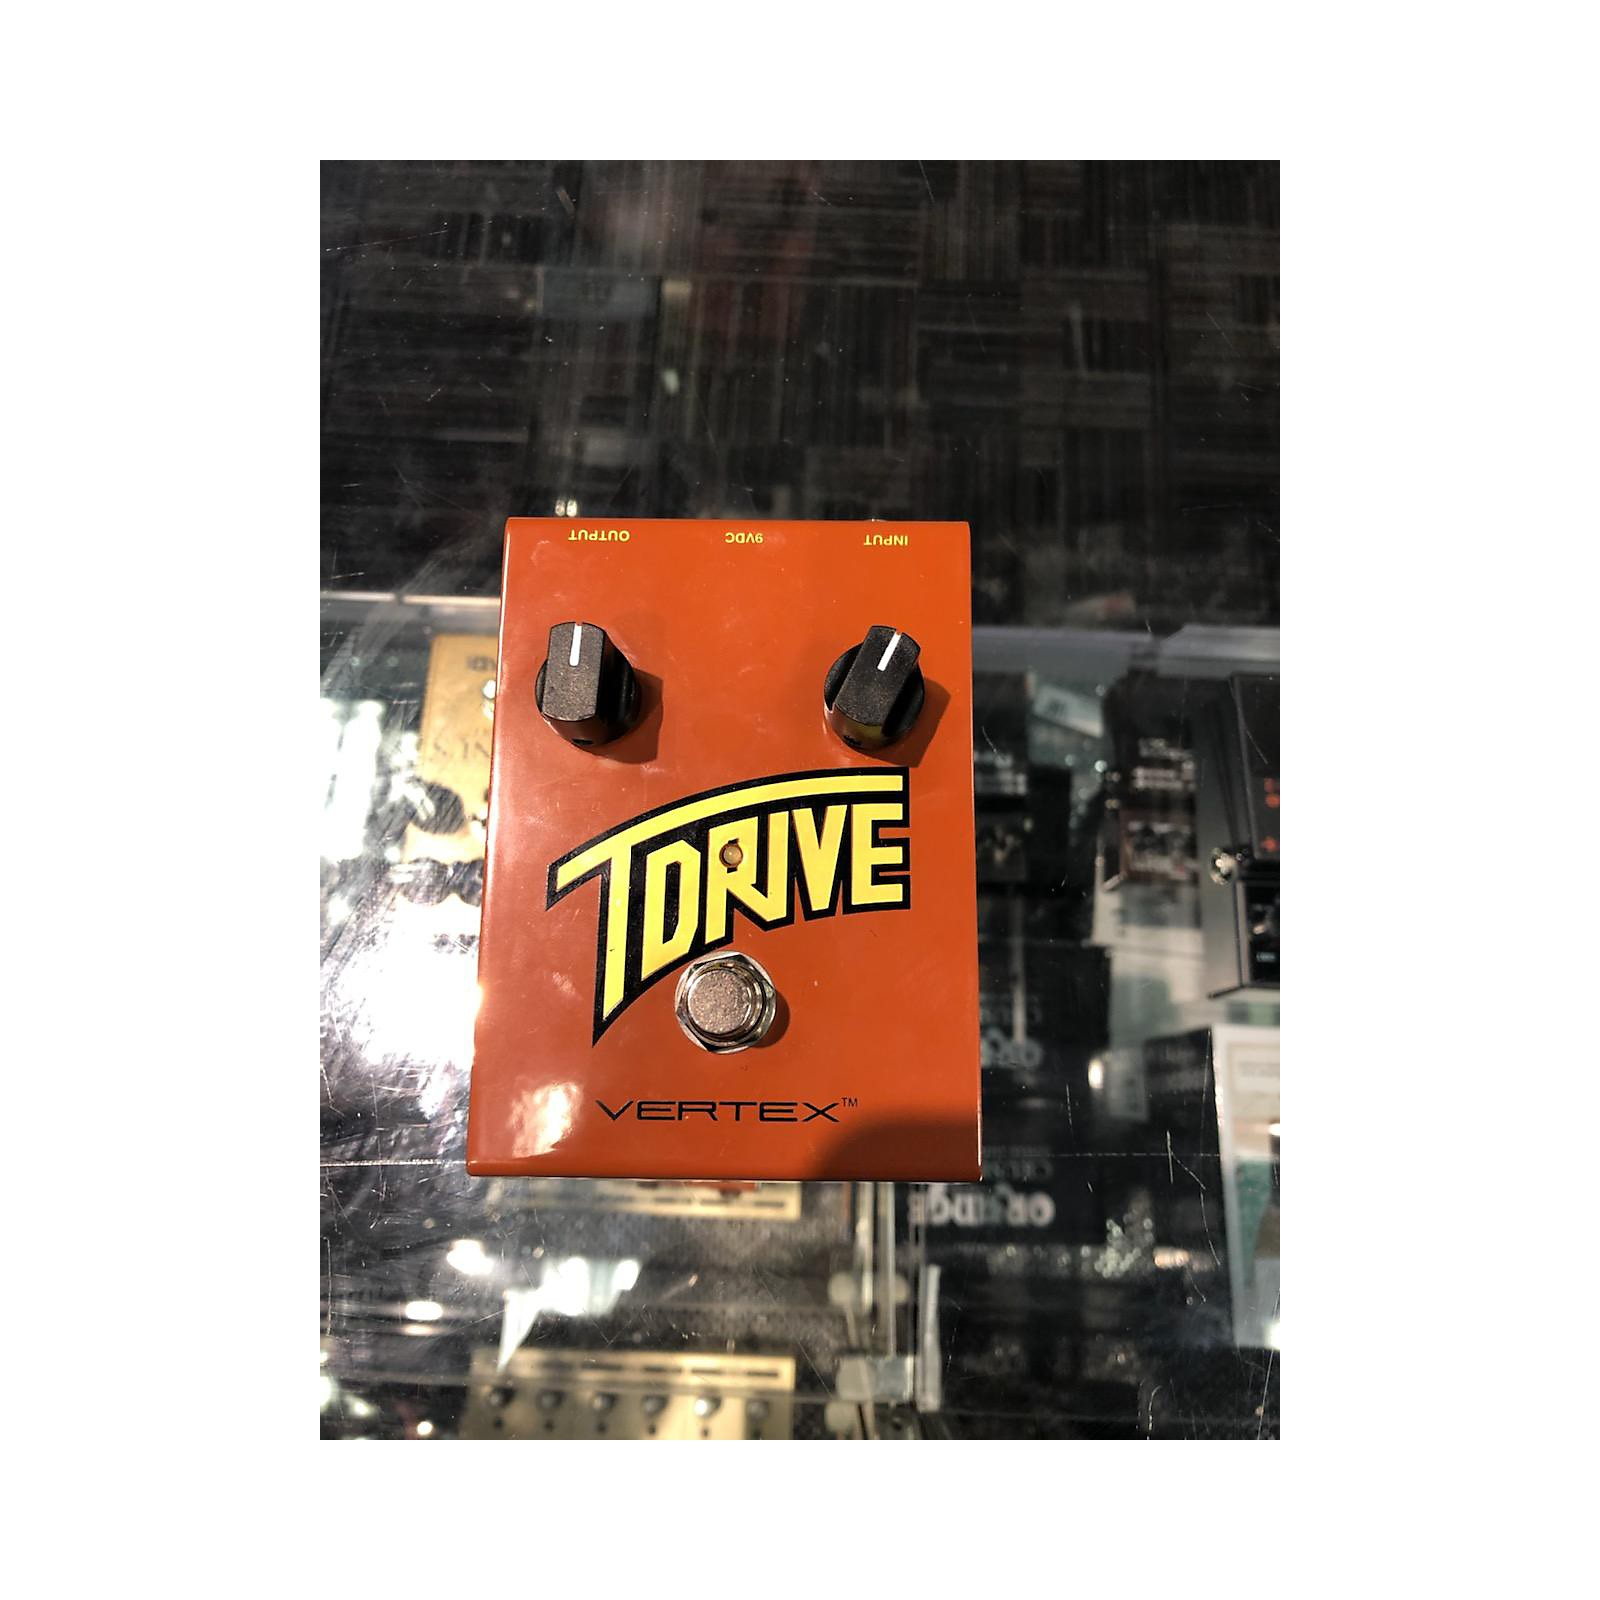 In Store Used Used 2010 VERTEX TDRIVE Effect Pedal